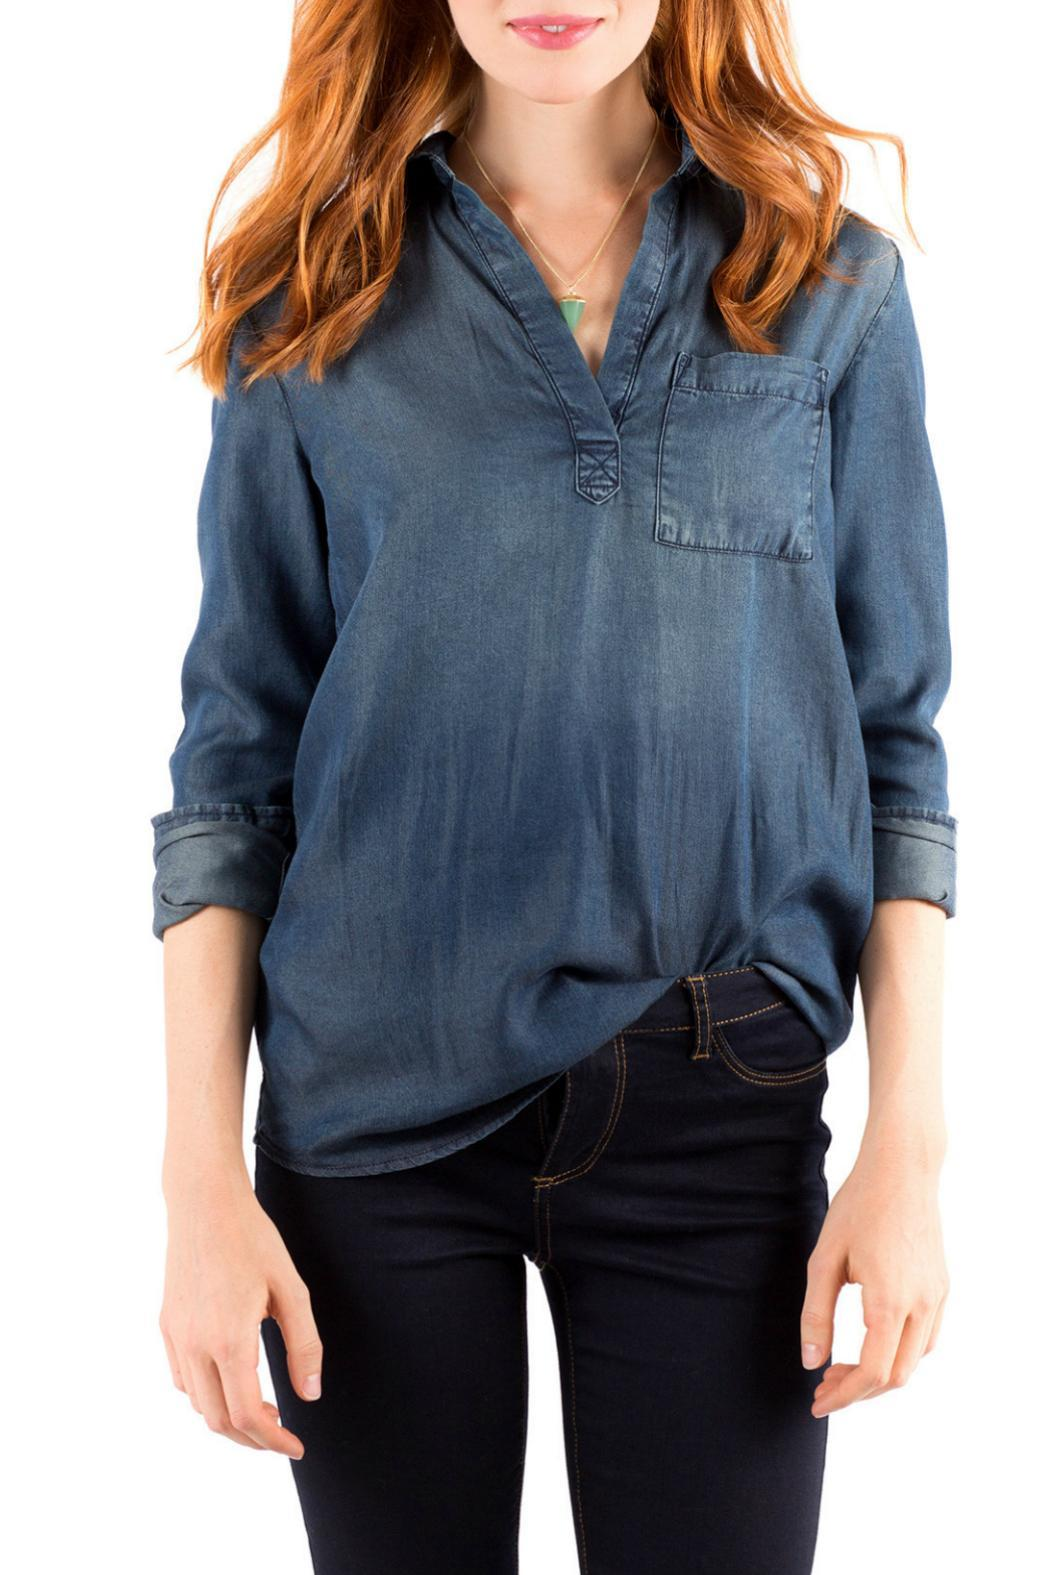 Downeast Basics Mountain Blue Top - Front Cropped Image